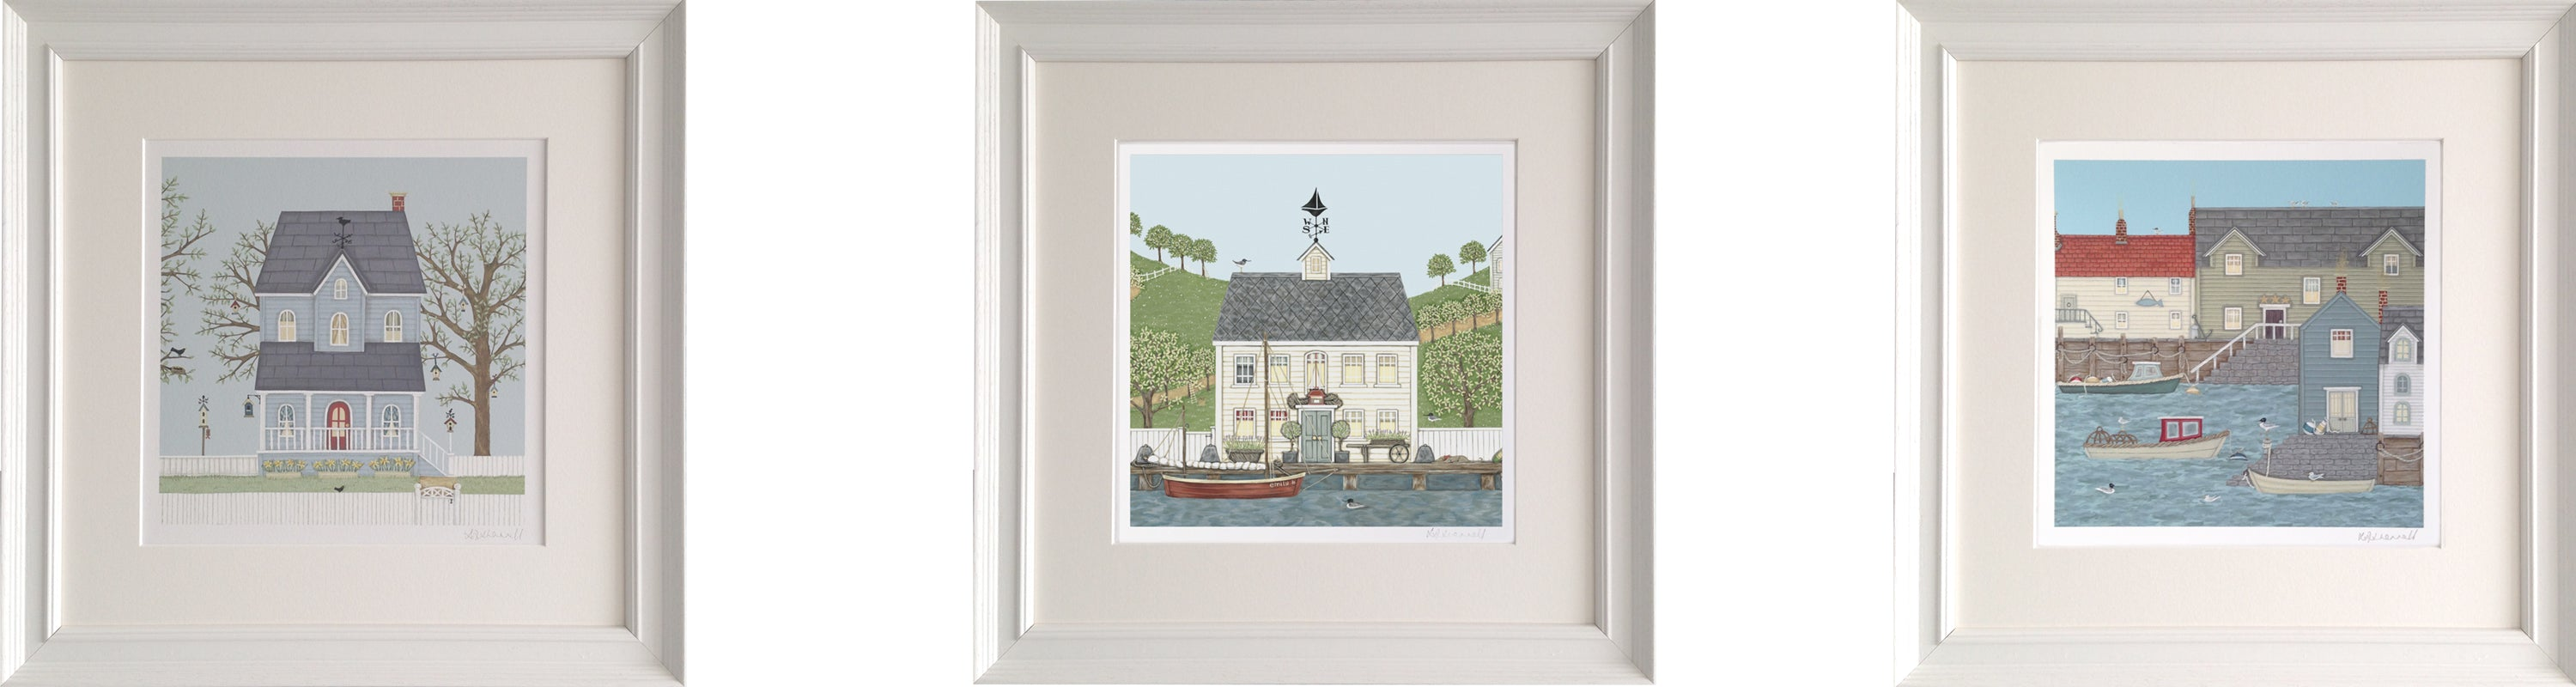 Hebe House The Captain's House Quayside Framed Prints